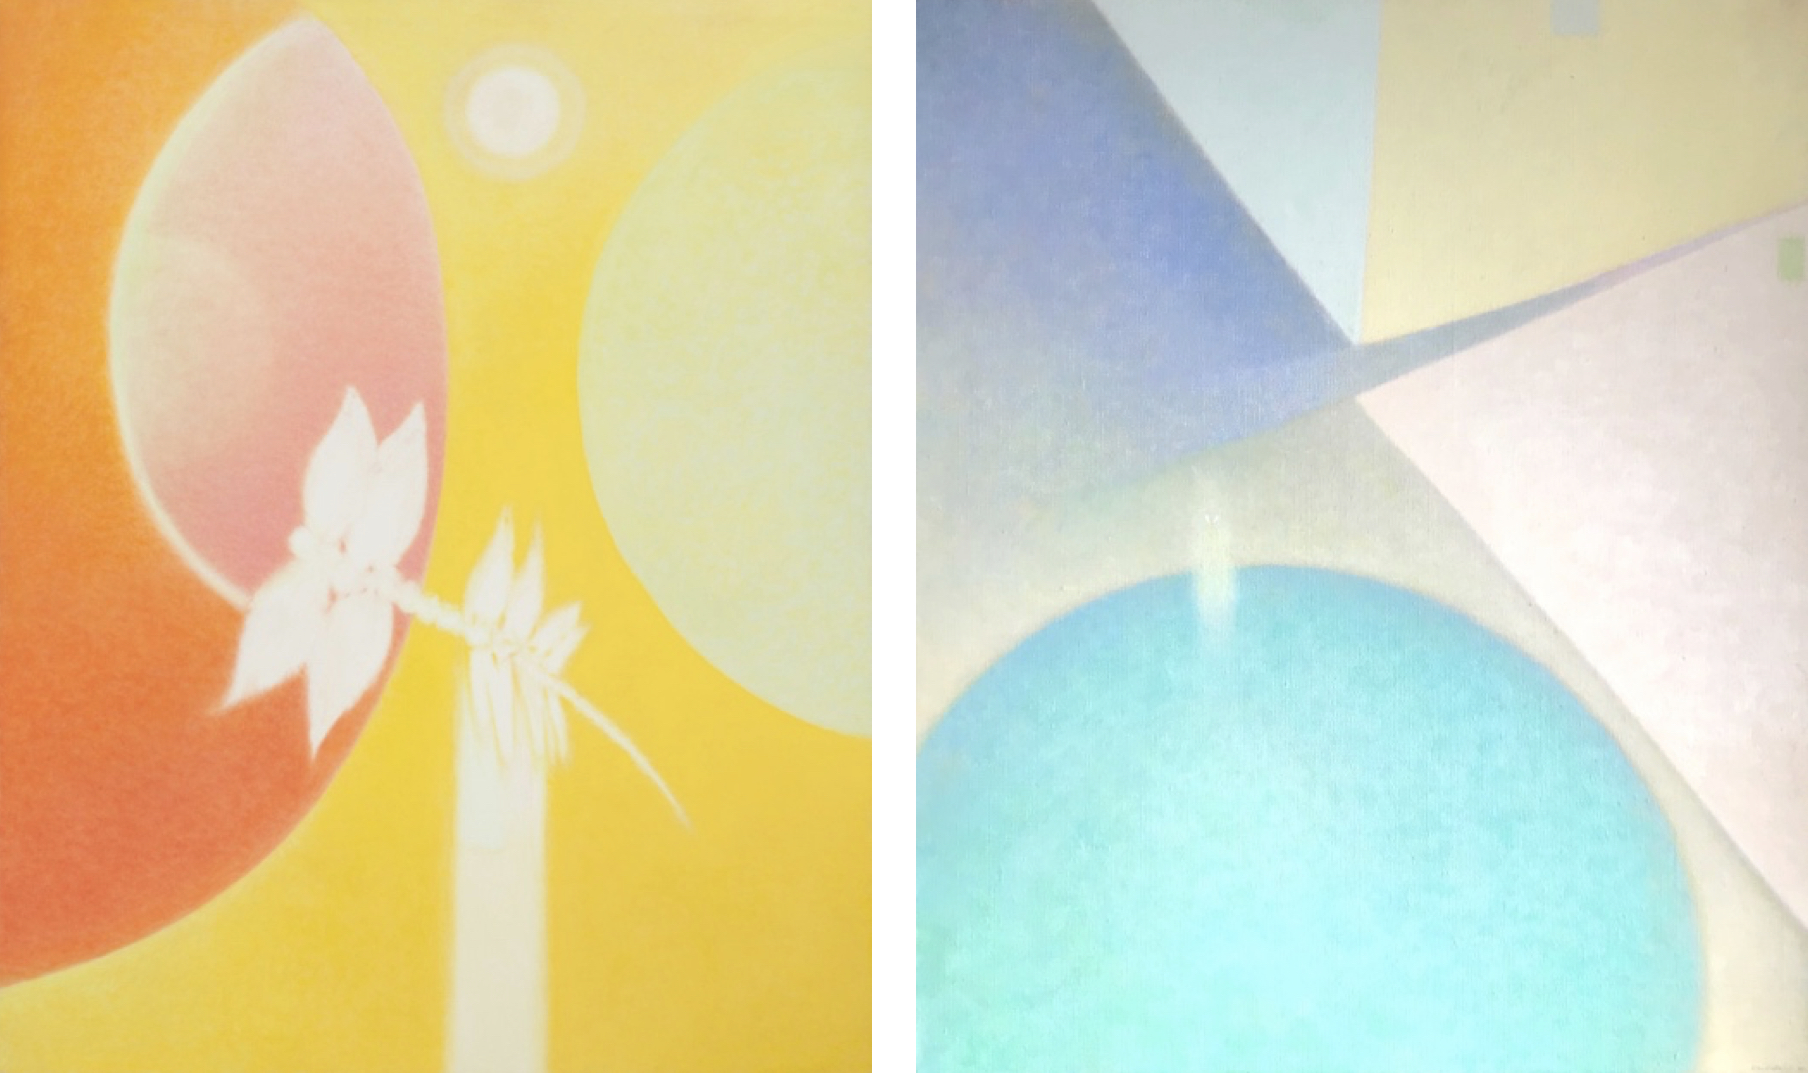 Left:  Outrider , 1972, Oil on linen, 62 x 51 inches. Right:  The Visitor , 1977, Oil on linen, 21 5/8 x 18 1/4 inches.